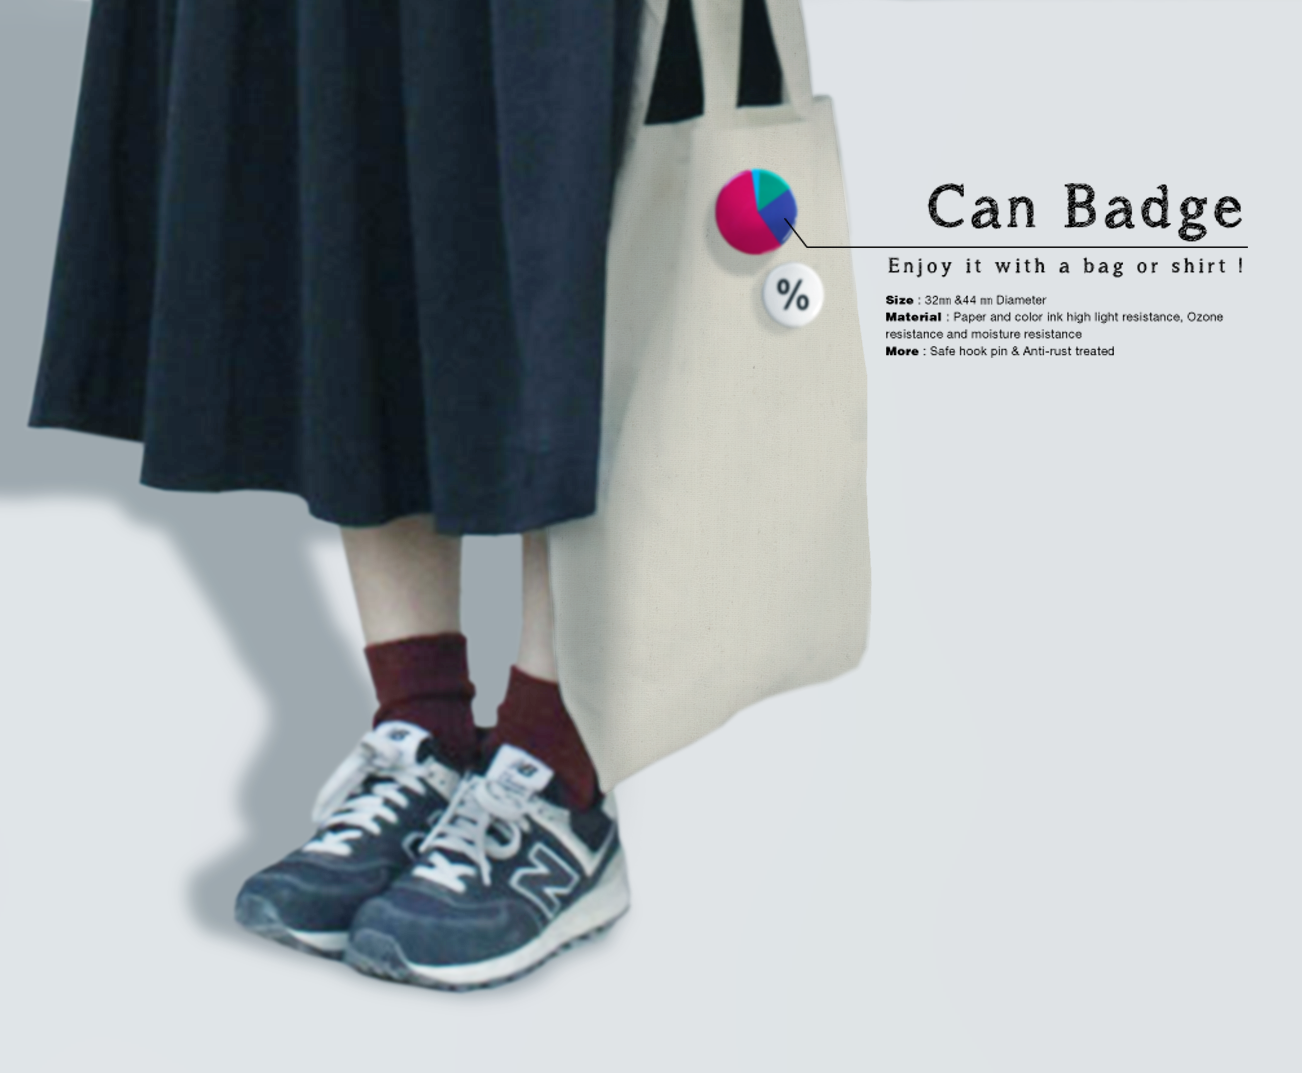 Can Badge